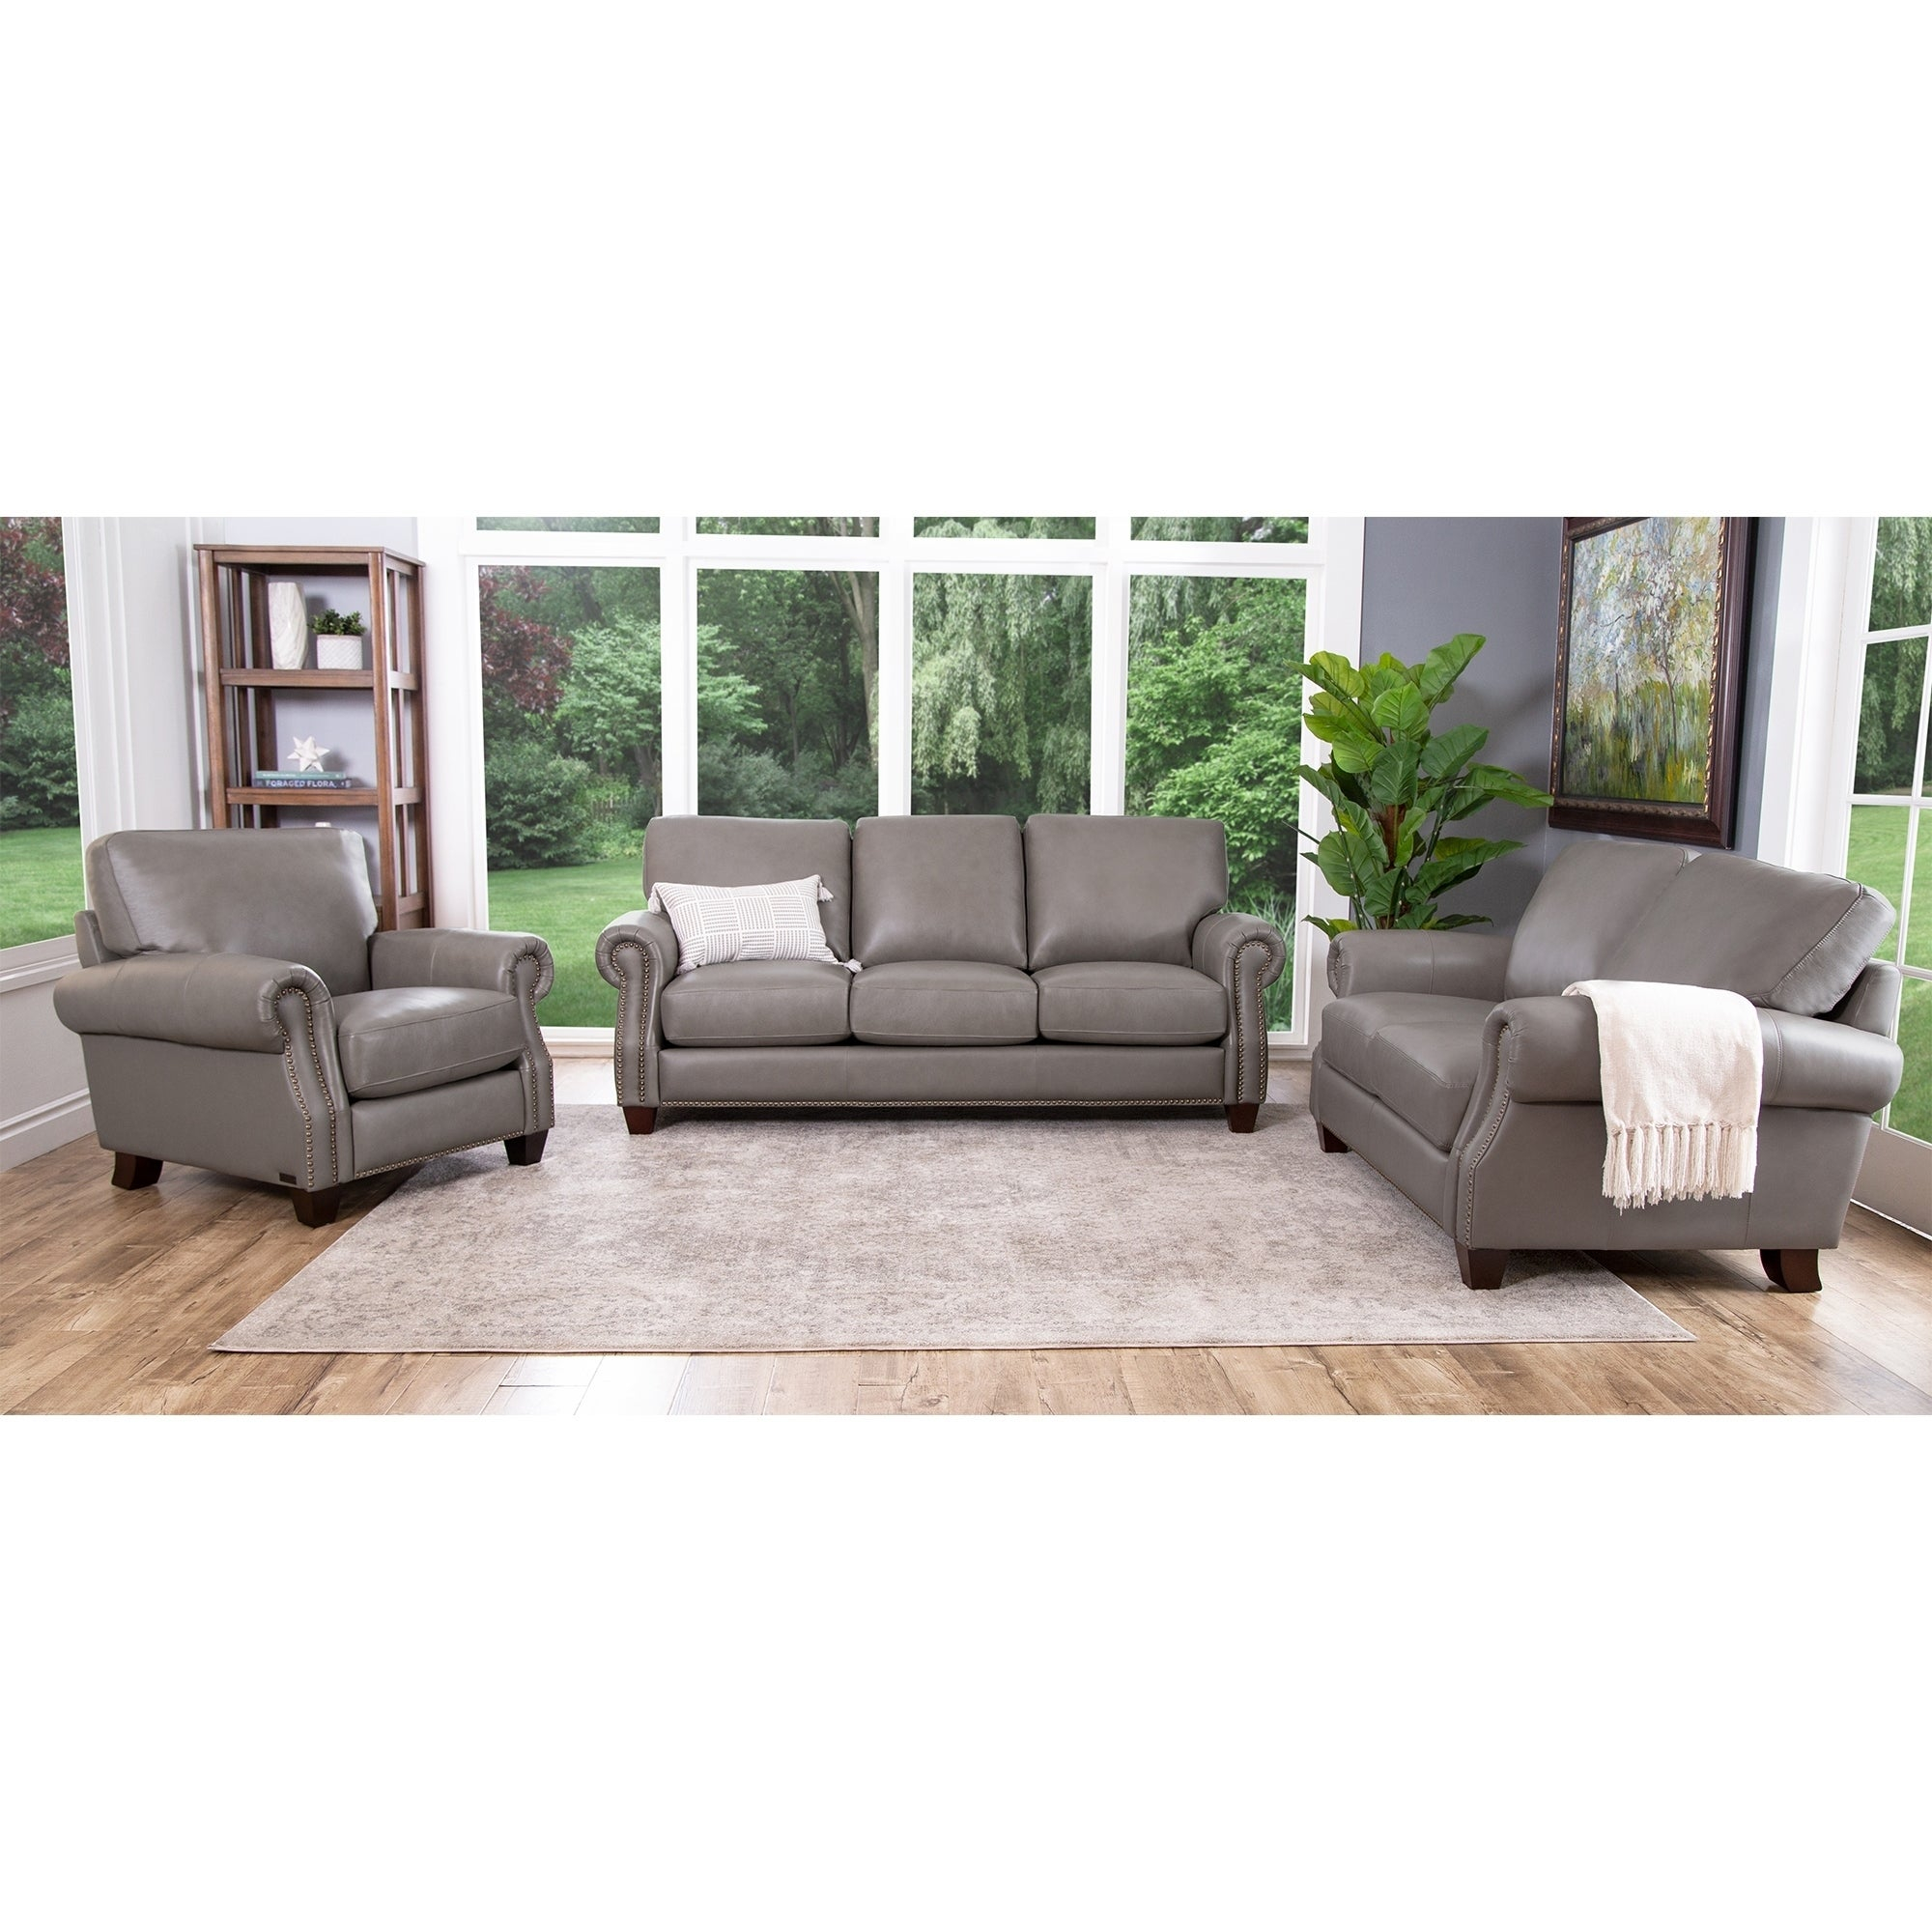 Buy Leather Living Room Furniture Sets Online At Overstock Our with Cheap Leather Living Room Sets